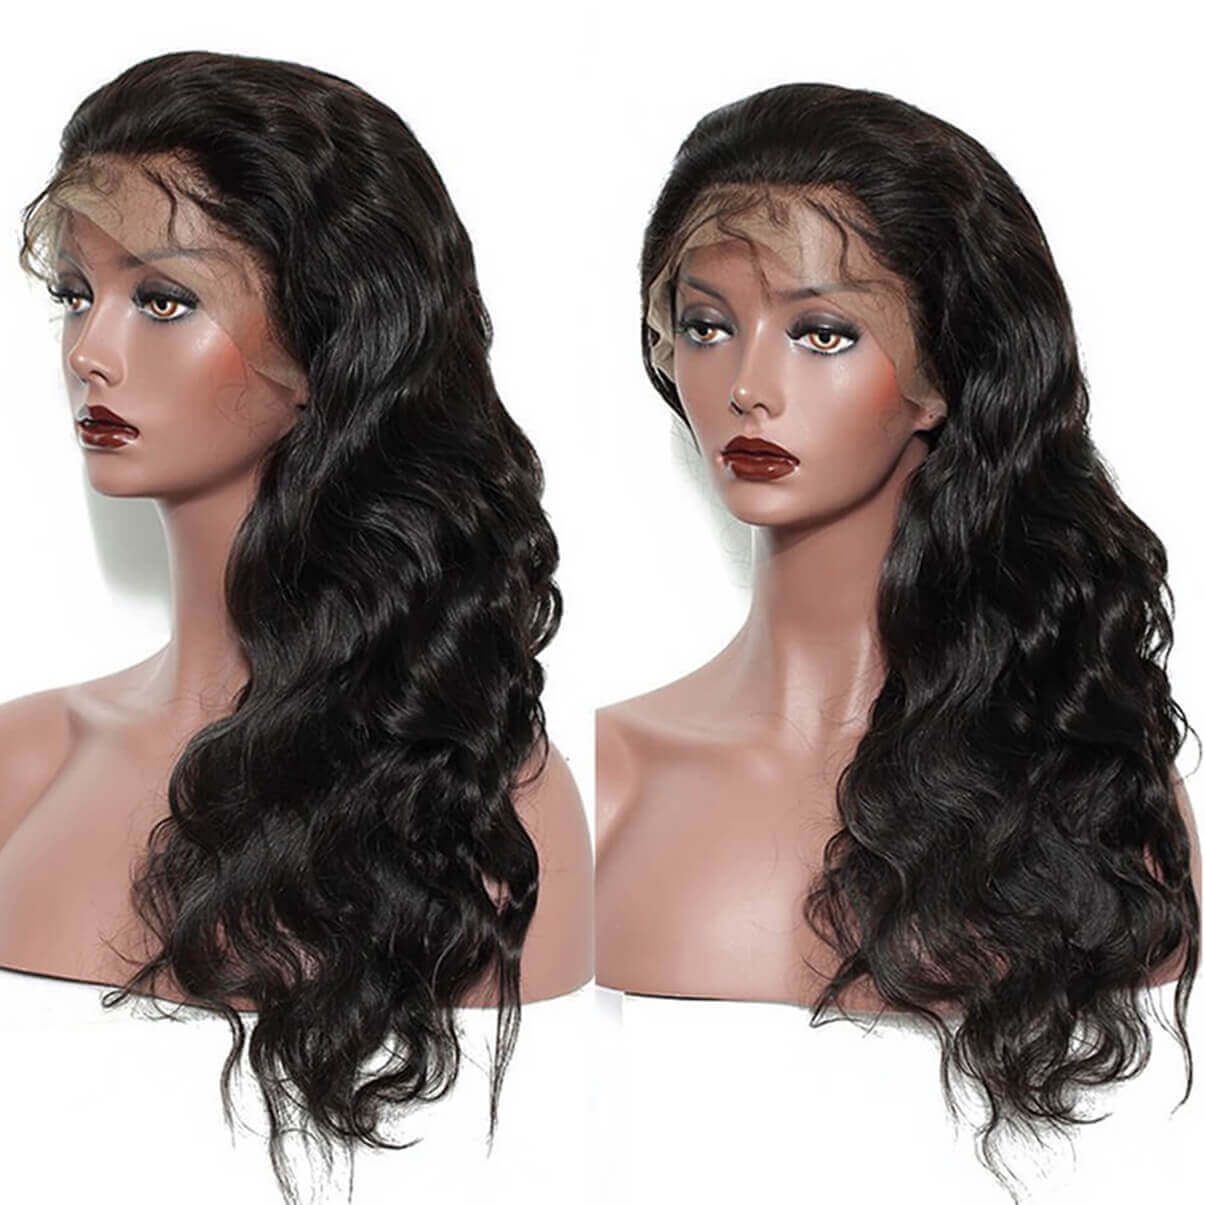 Lakihair Body Wave Full Lace Virgin Human Hair Wigs 180% Density Pre Plucked With Baby Hair